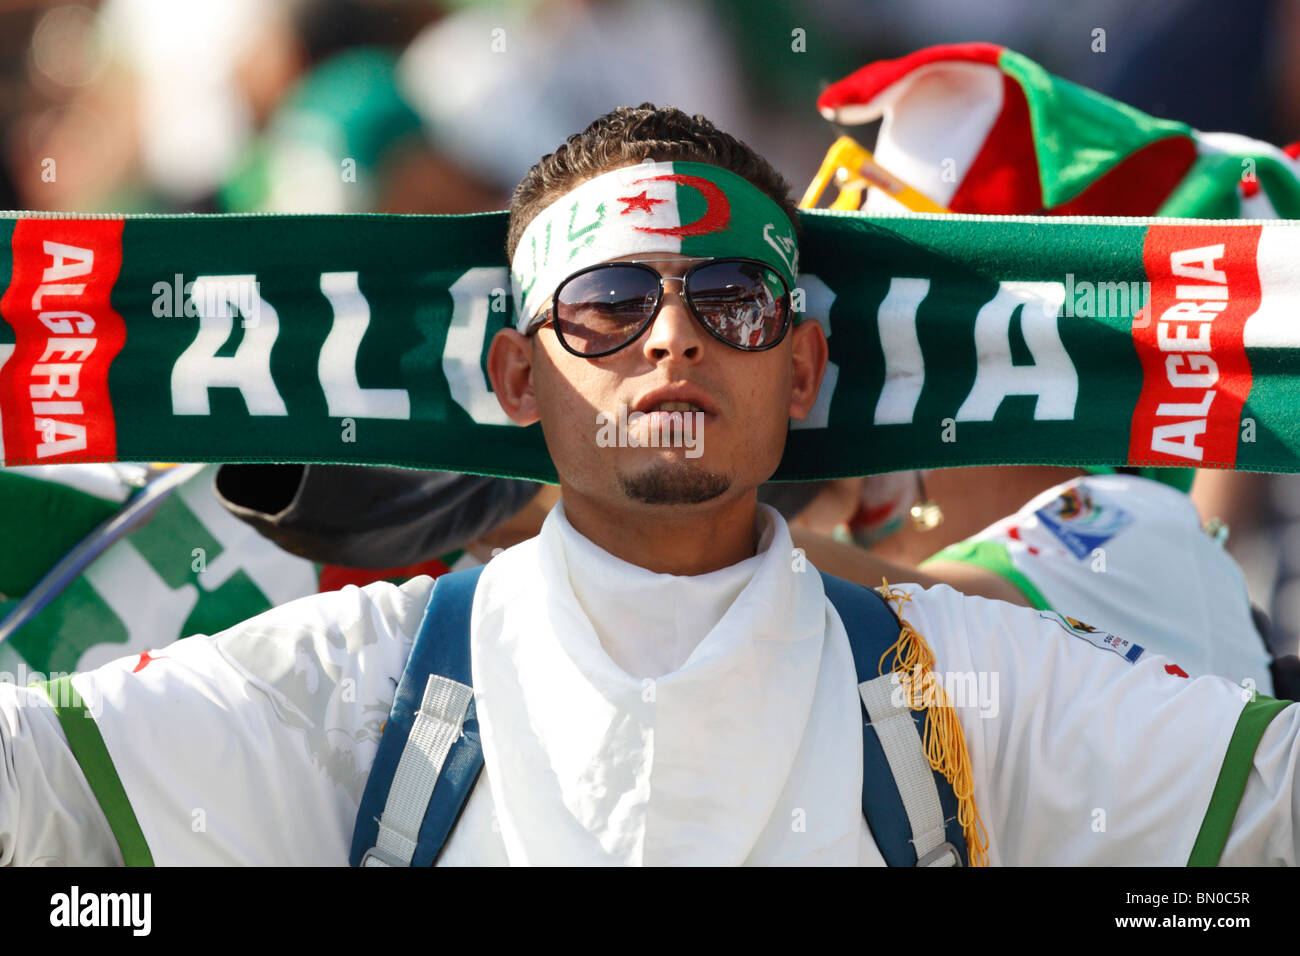 An Algerian supporter seen at a 2010 FIFA World Cup football match between Algeria and the United States June 23, - Stock Image